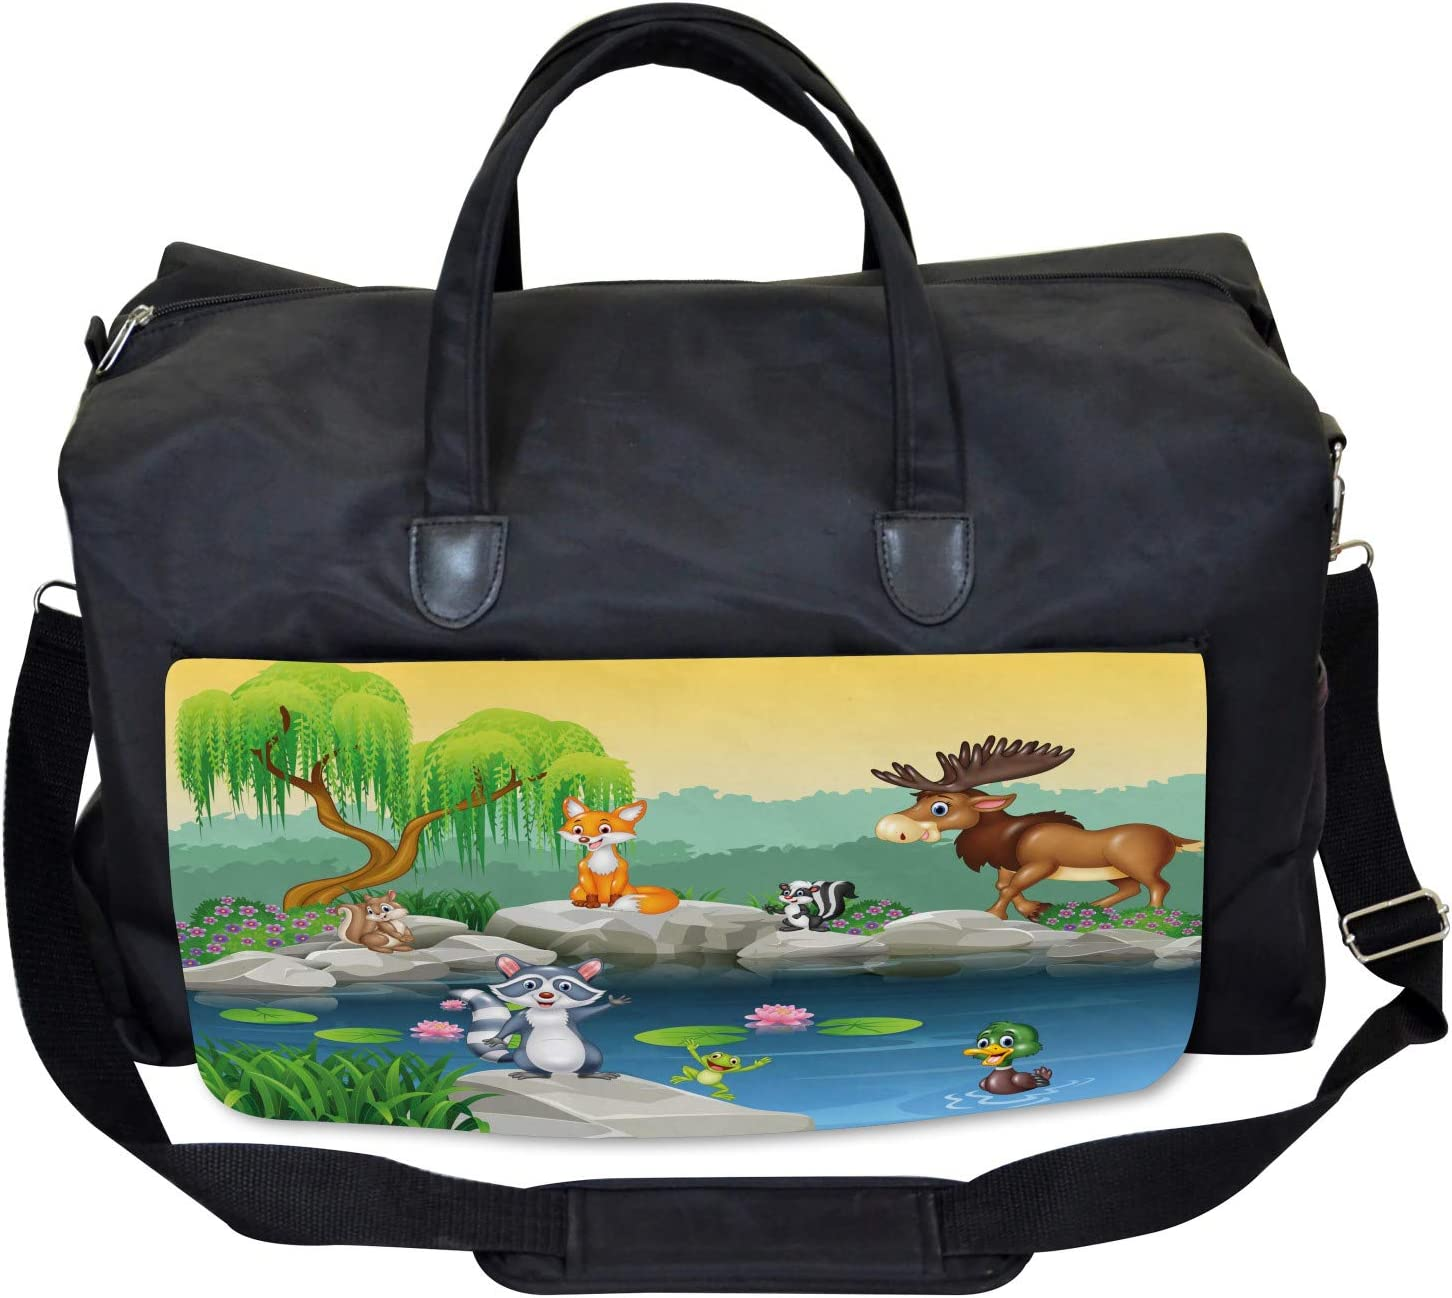 Funny Mascot Animals Large Weekender Carry-on Ambesonne Cartoon Gym Bag